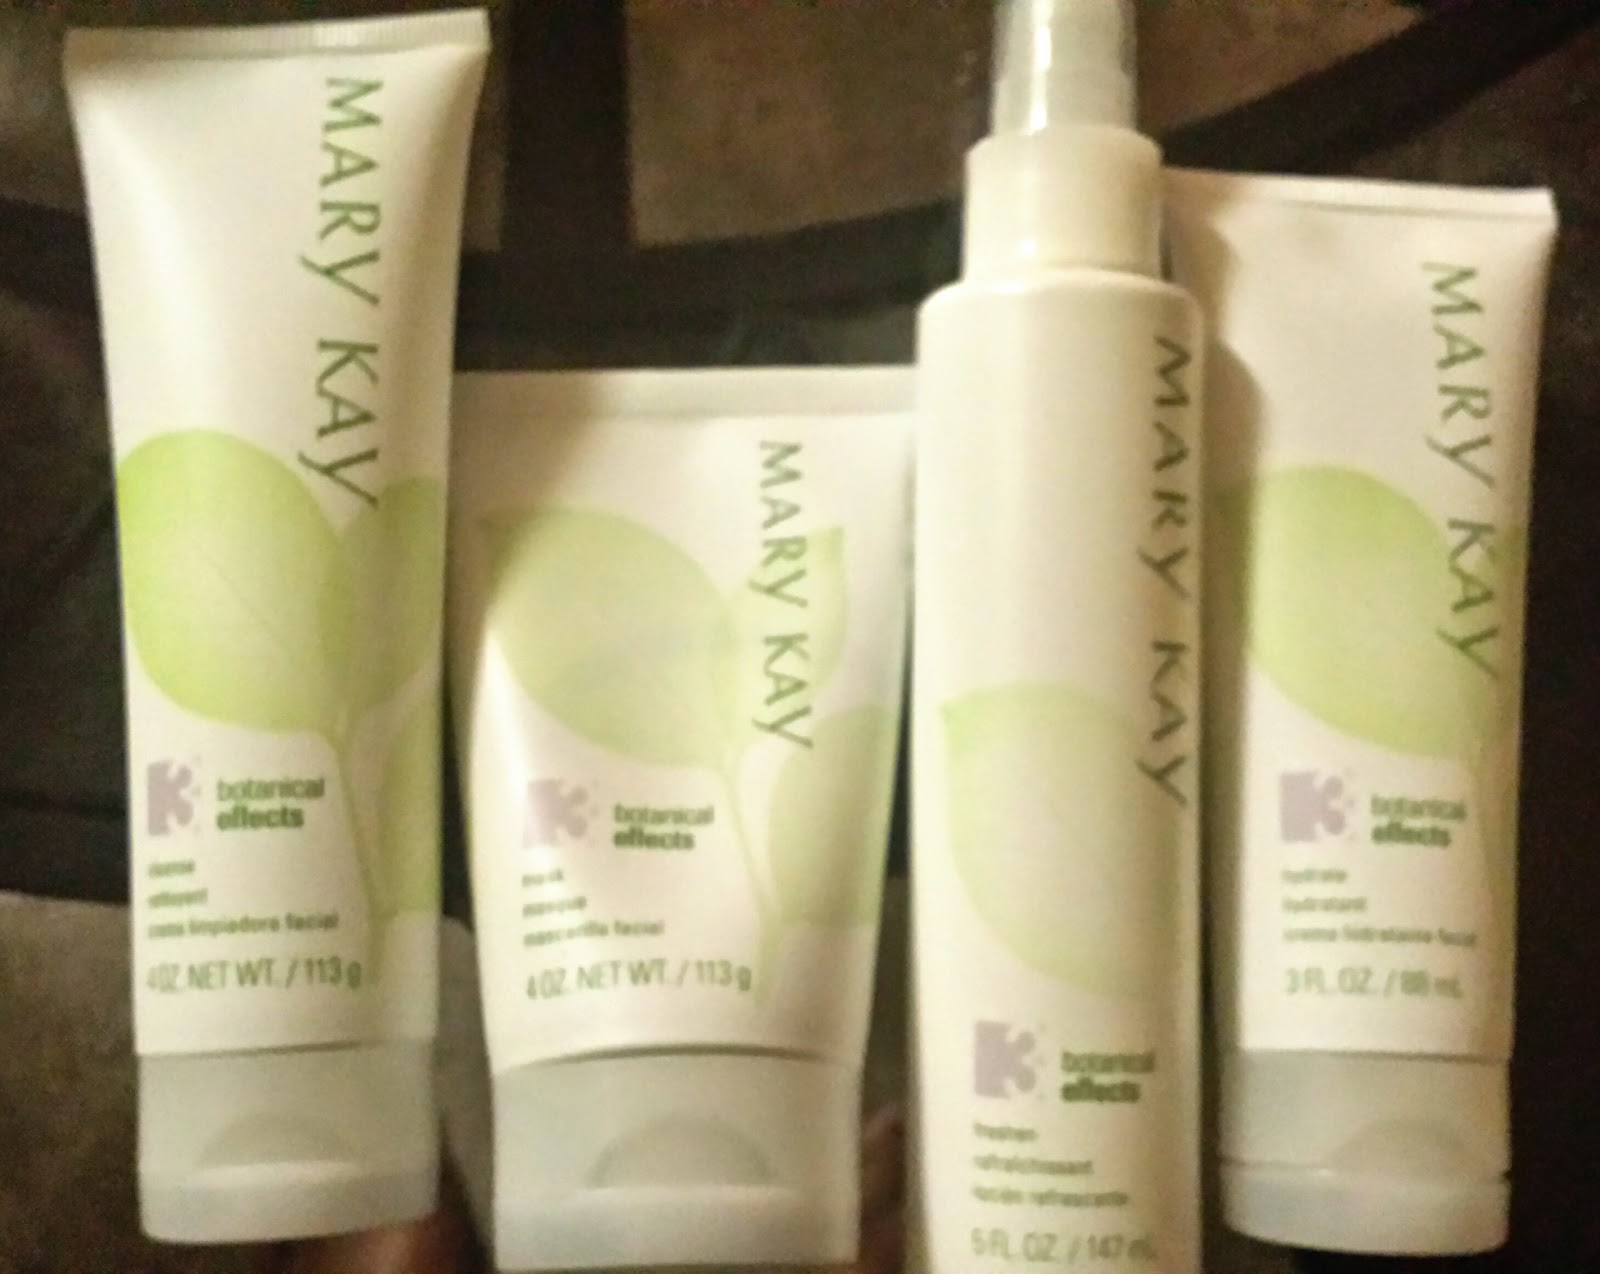 Mary Kay's Botanical Effects™ Skin Care Four Piece Set and ...